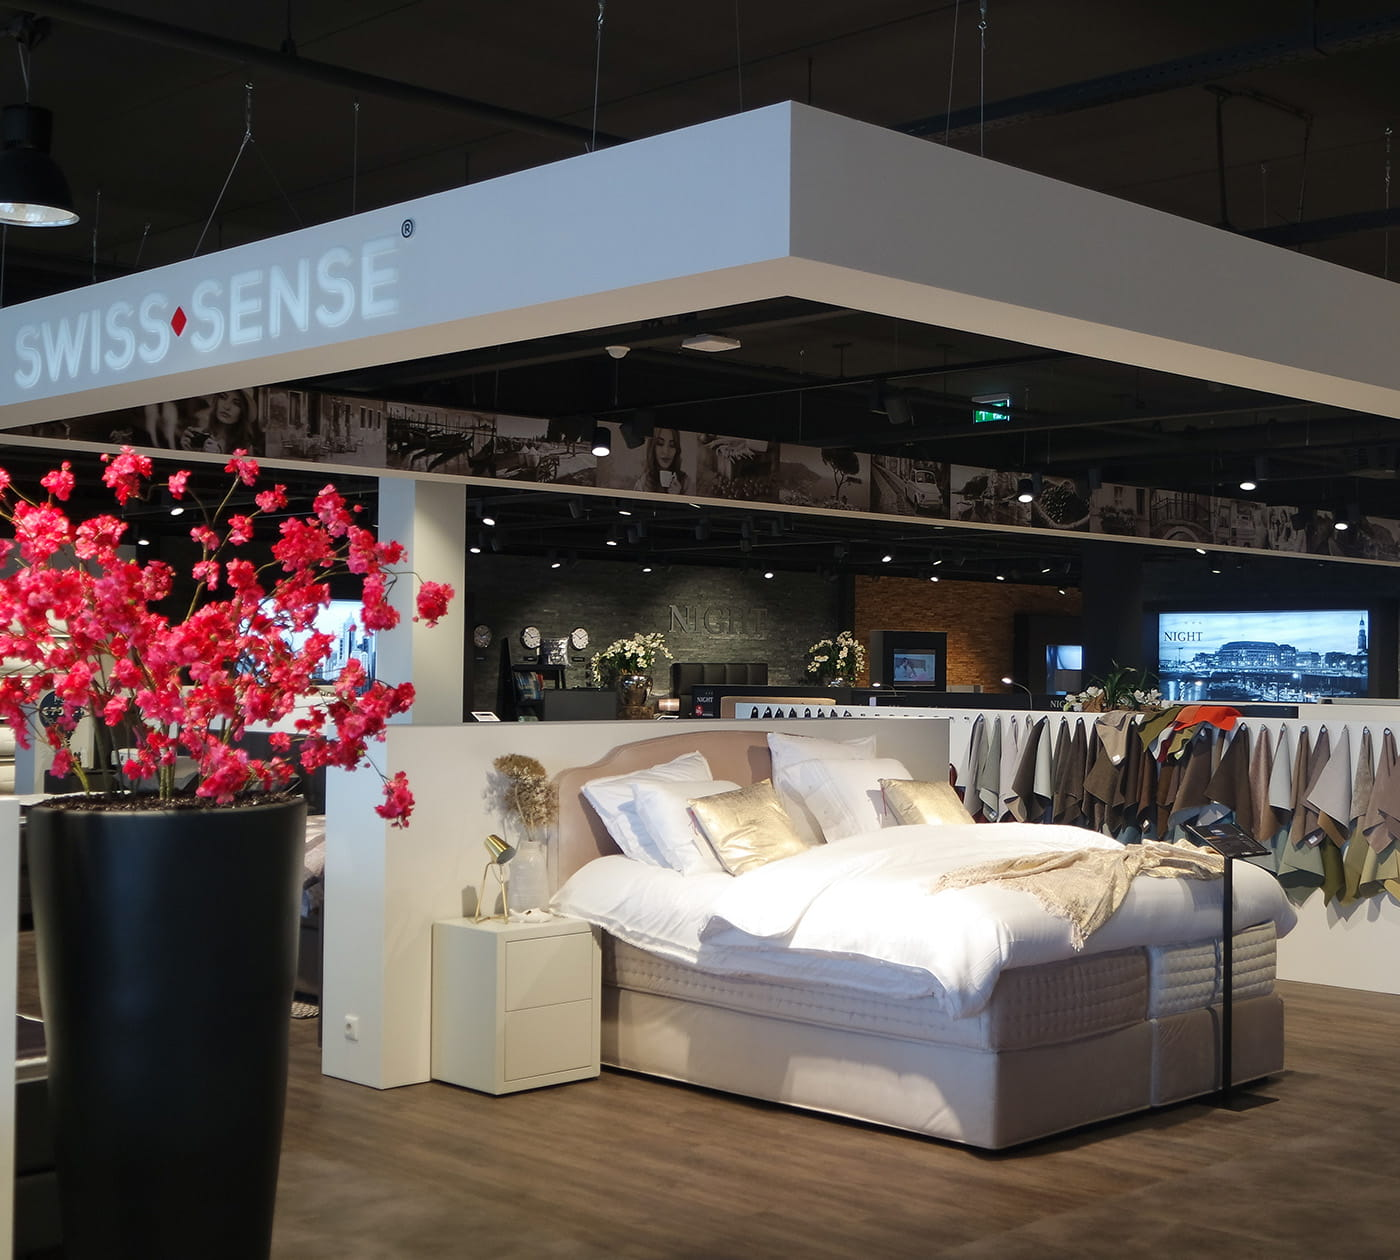 boxspringbetten und matratzen in heerlen swiss sense. Black Bedroom Furniture Sets. Home Design Ideas